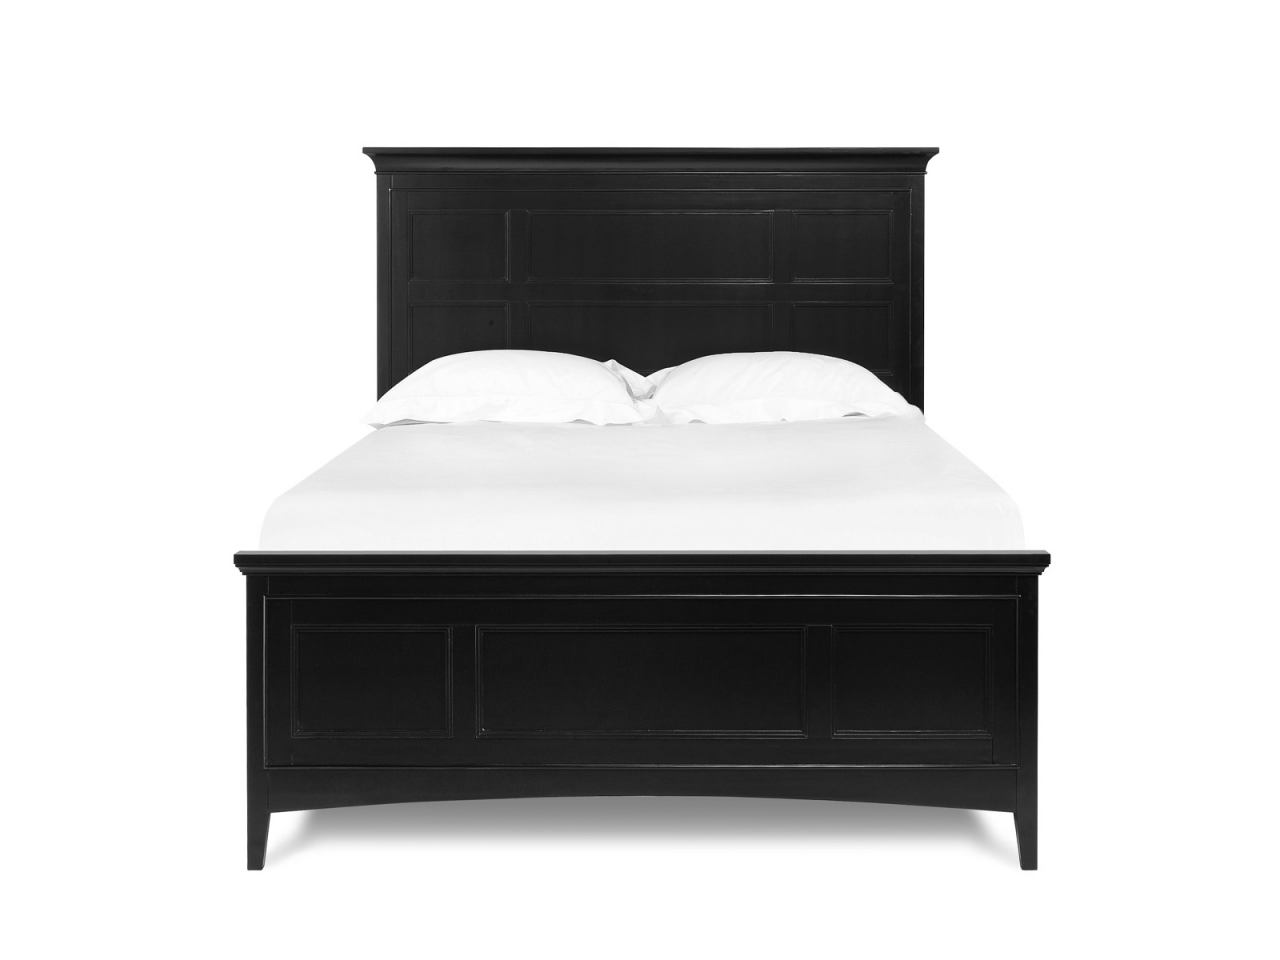 Magnussen Furniture Southampton King Panel Bed with Storage Rails in Black B1399-64SR